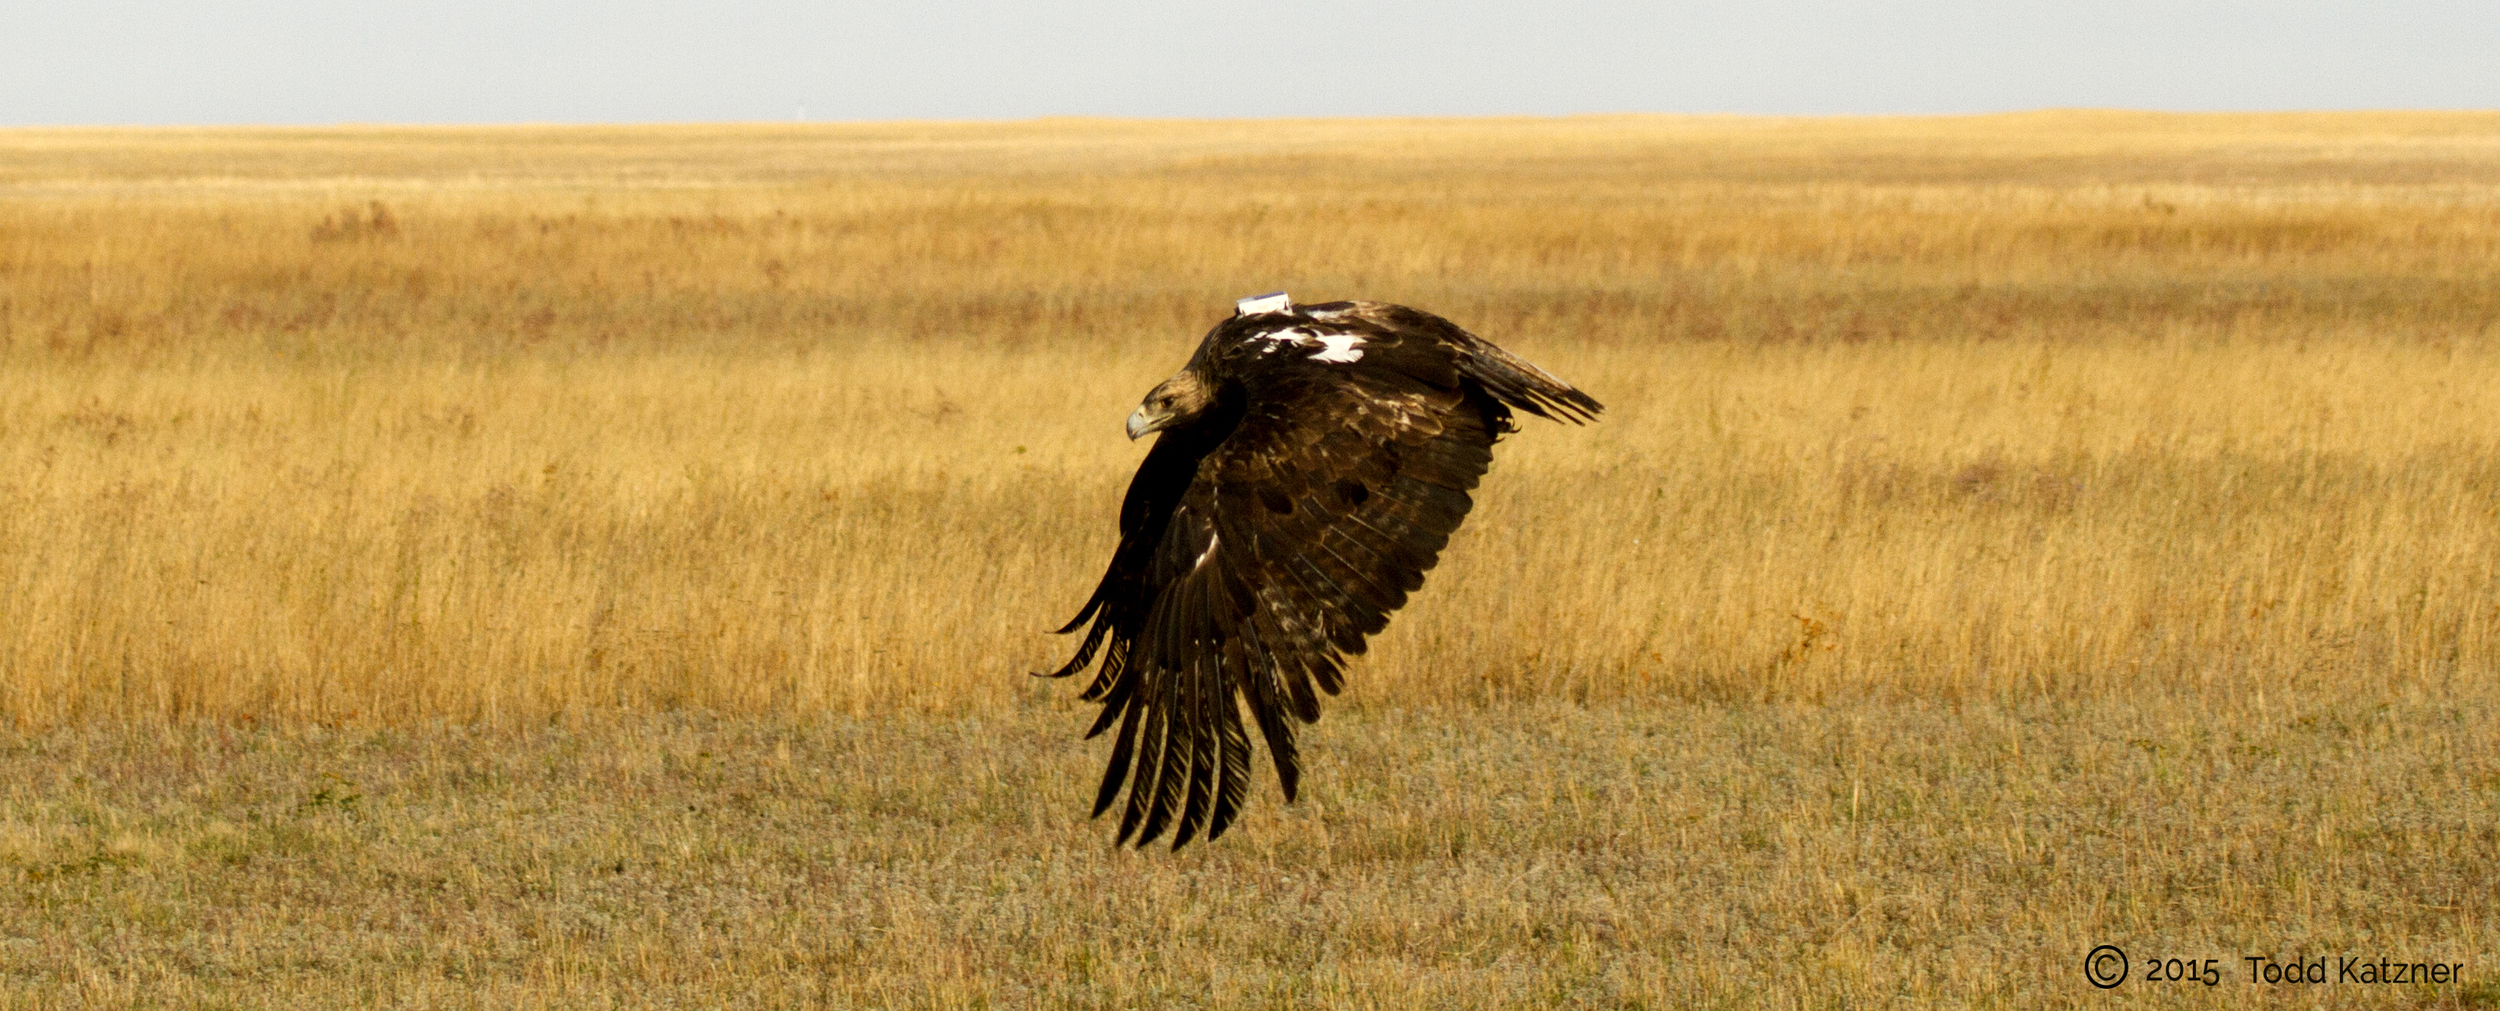 eagle in flight after being fitted with telemetry unit and banded for study.